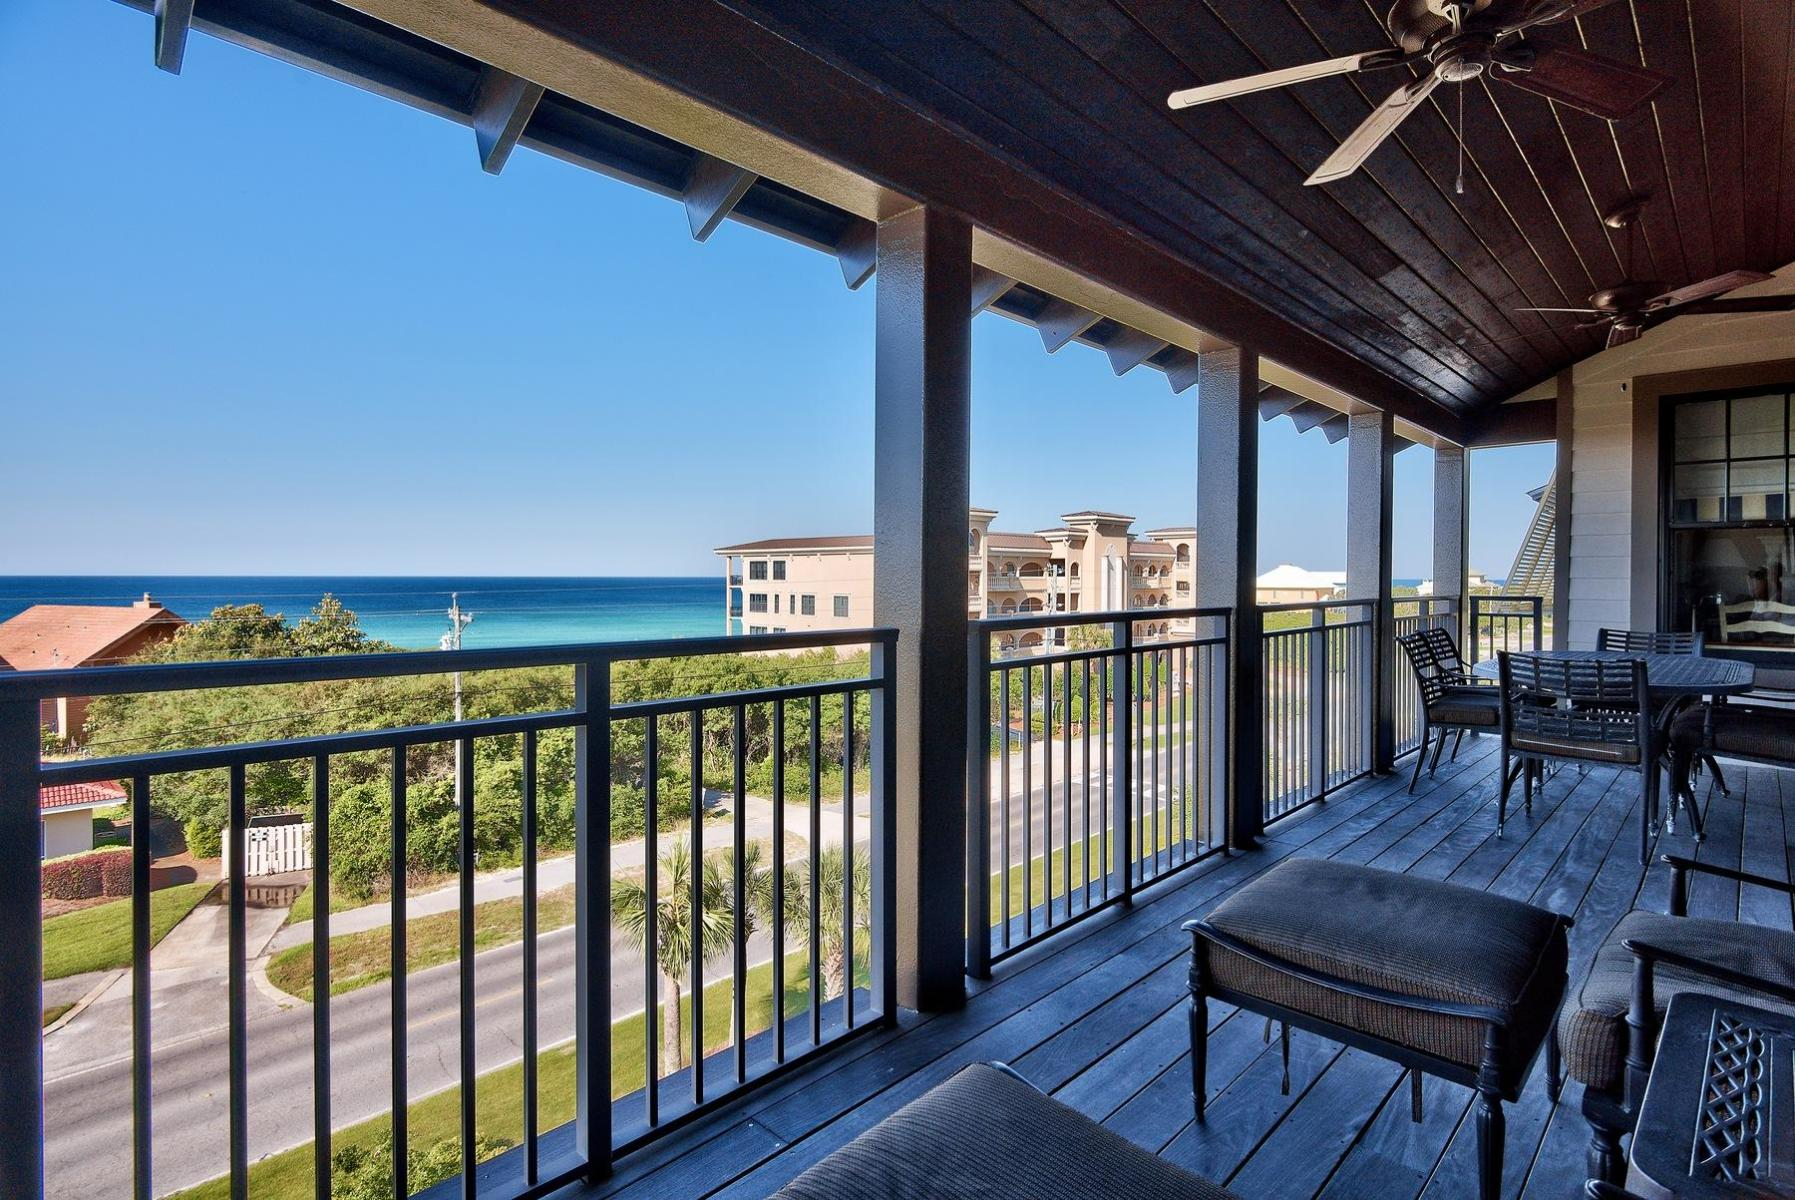 Property For Sale at 4TH FLOOR GULFVIEW CONDO